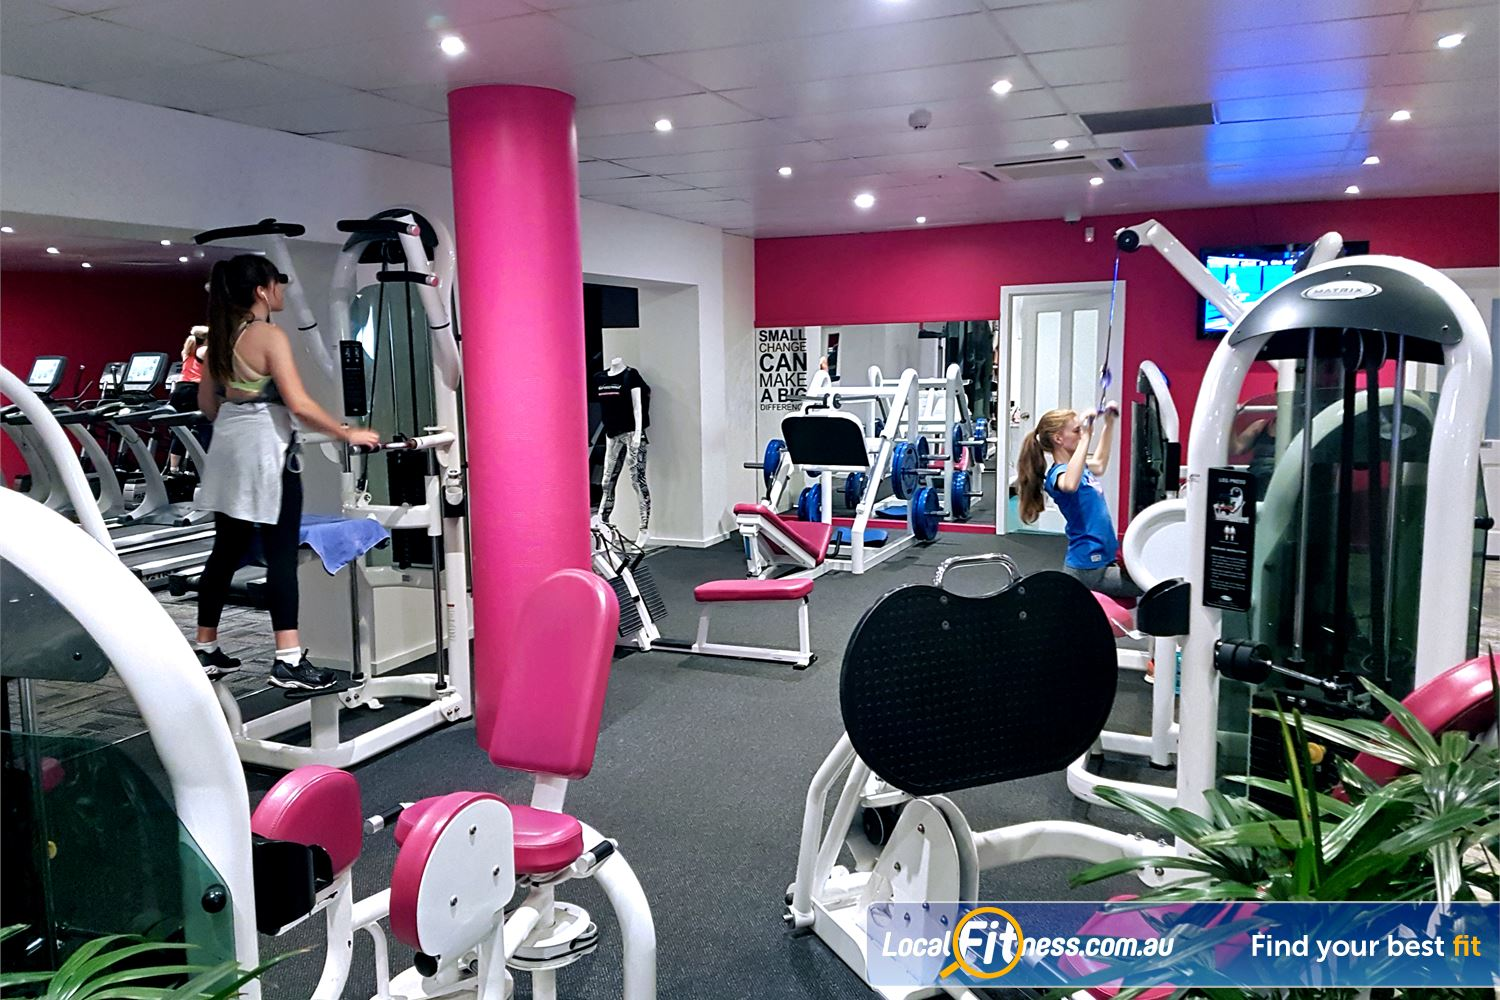 Fernwood Fitness St Agnes Welcome to Fernwood St Agnes opened 24/7.